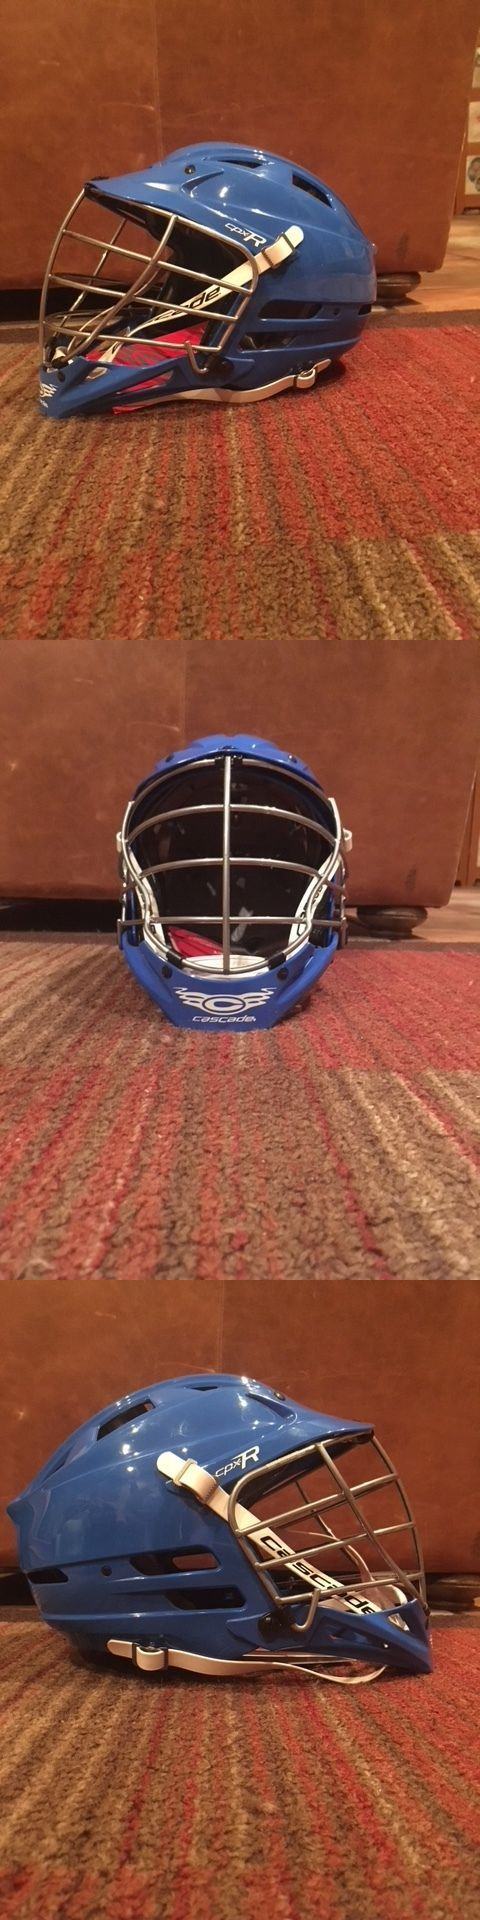 Protective Gear 62164: Cascade Lacrosse Helmet Cpx-R -Royal Blue -> BUY IT NOW ONLY: $200 on eBay!